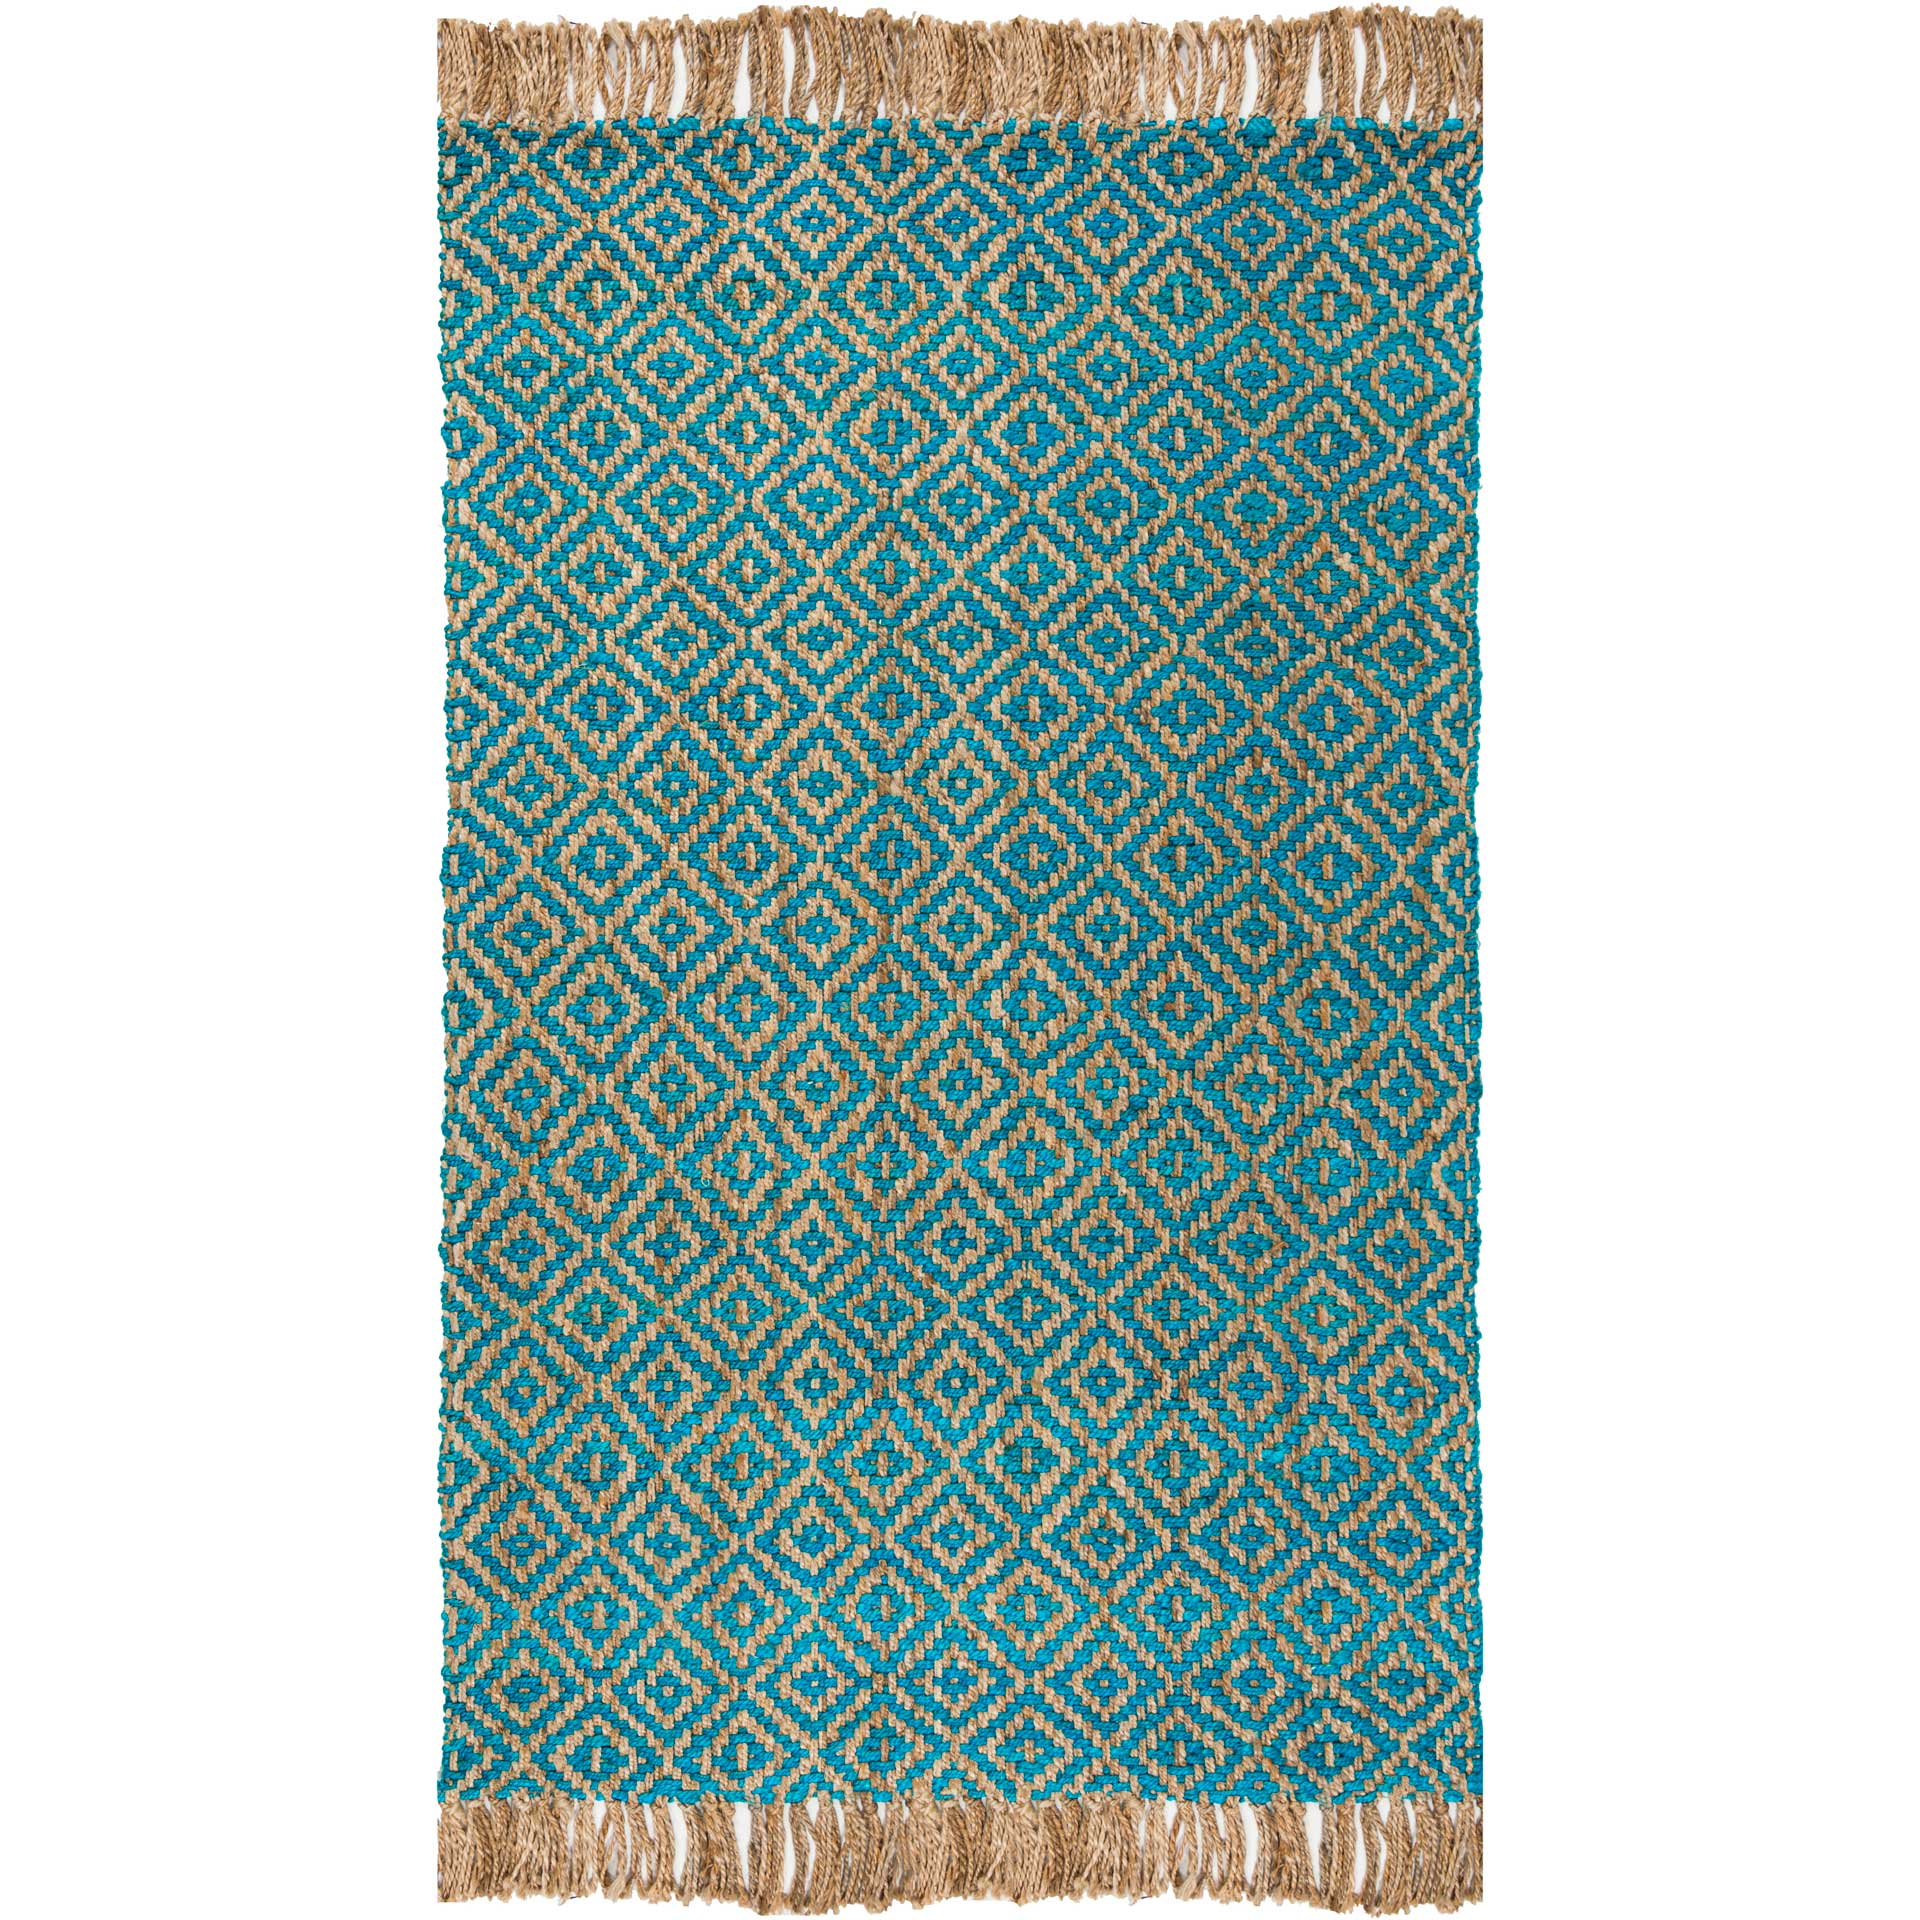 Natural Fiber Turquoise Natural Area Rug